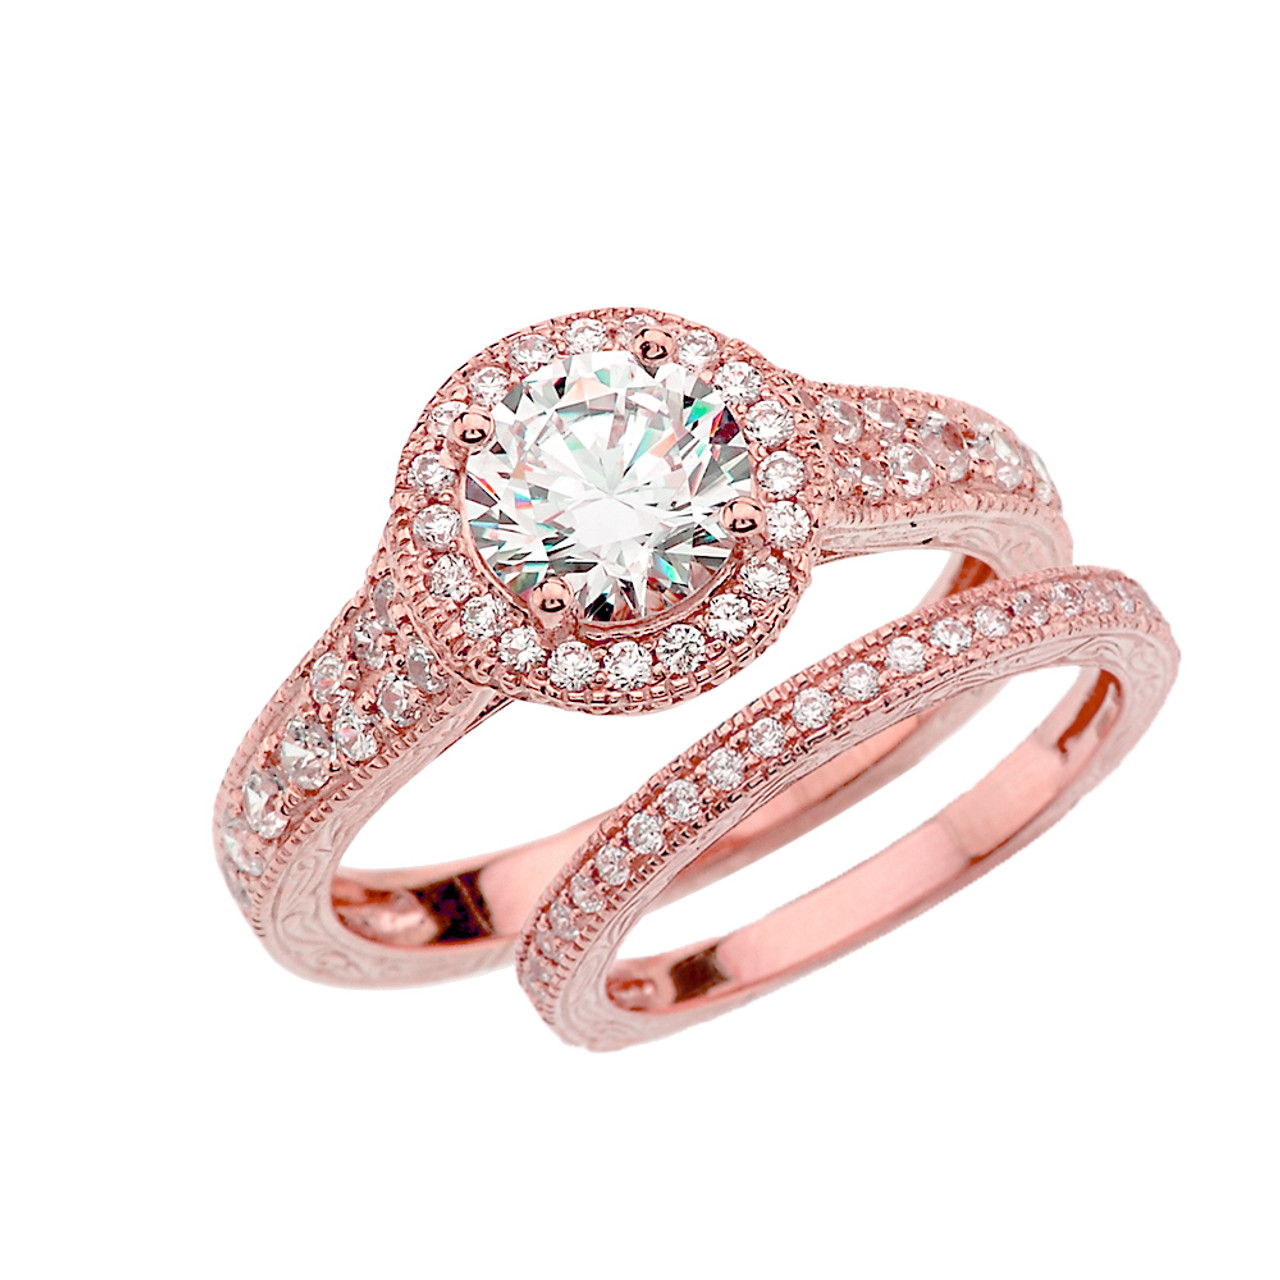 Rose Gold Art Deco Diamond Wedding Ring Set With 1 ct White Topaz ...